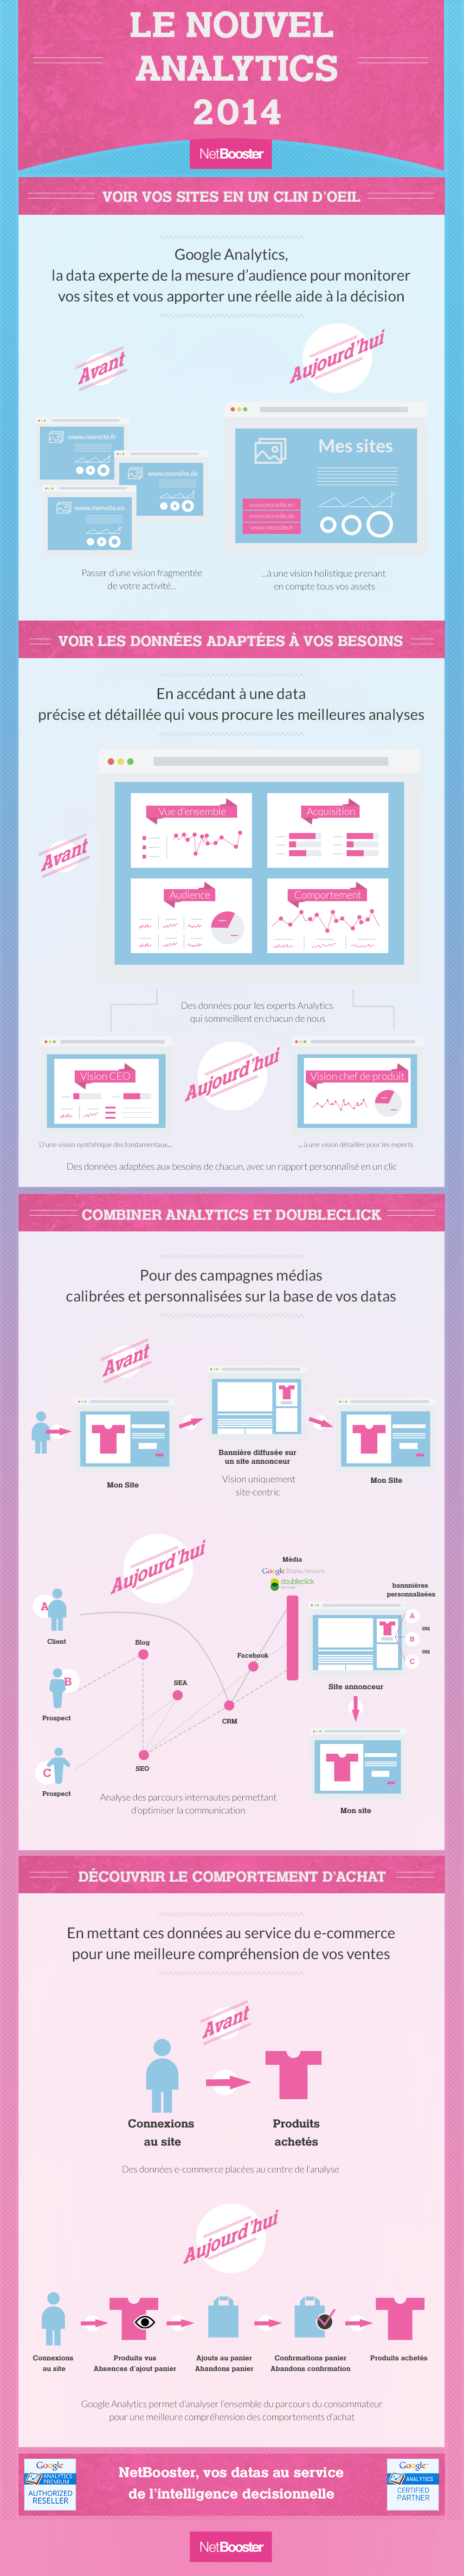 infographie-Analytics-Summit-2014